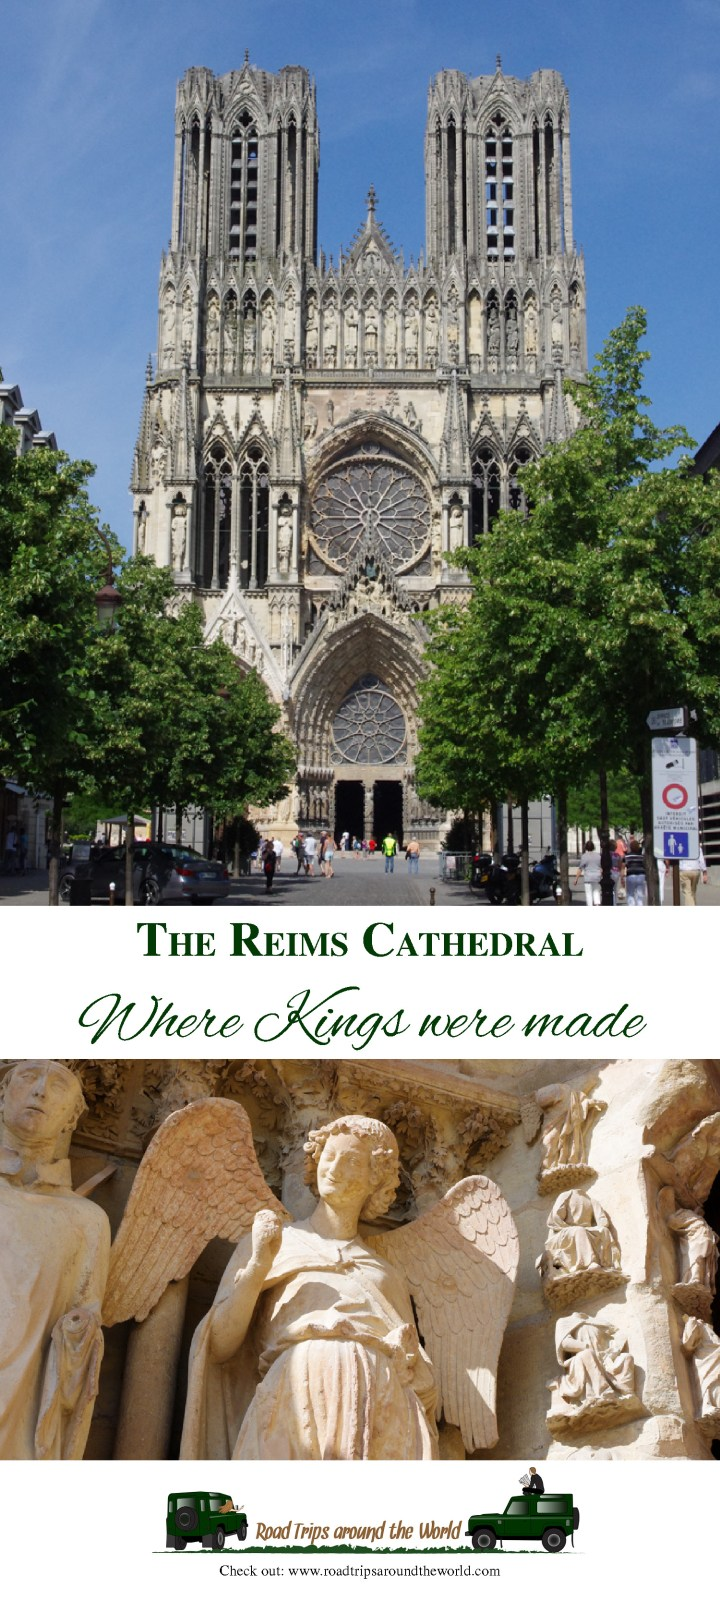 Reims Cathedral: Where Kings were made! Check out roadtripsaroundtheworld.com to know more about this amazing Cathedral in the heart of the Champagne region